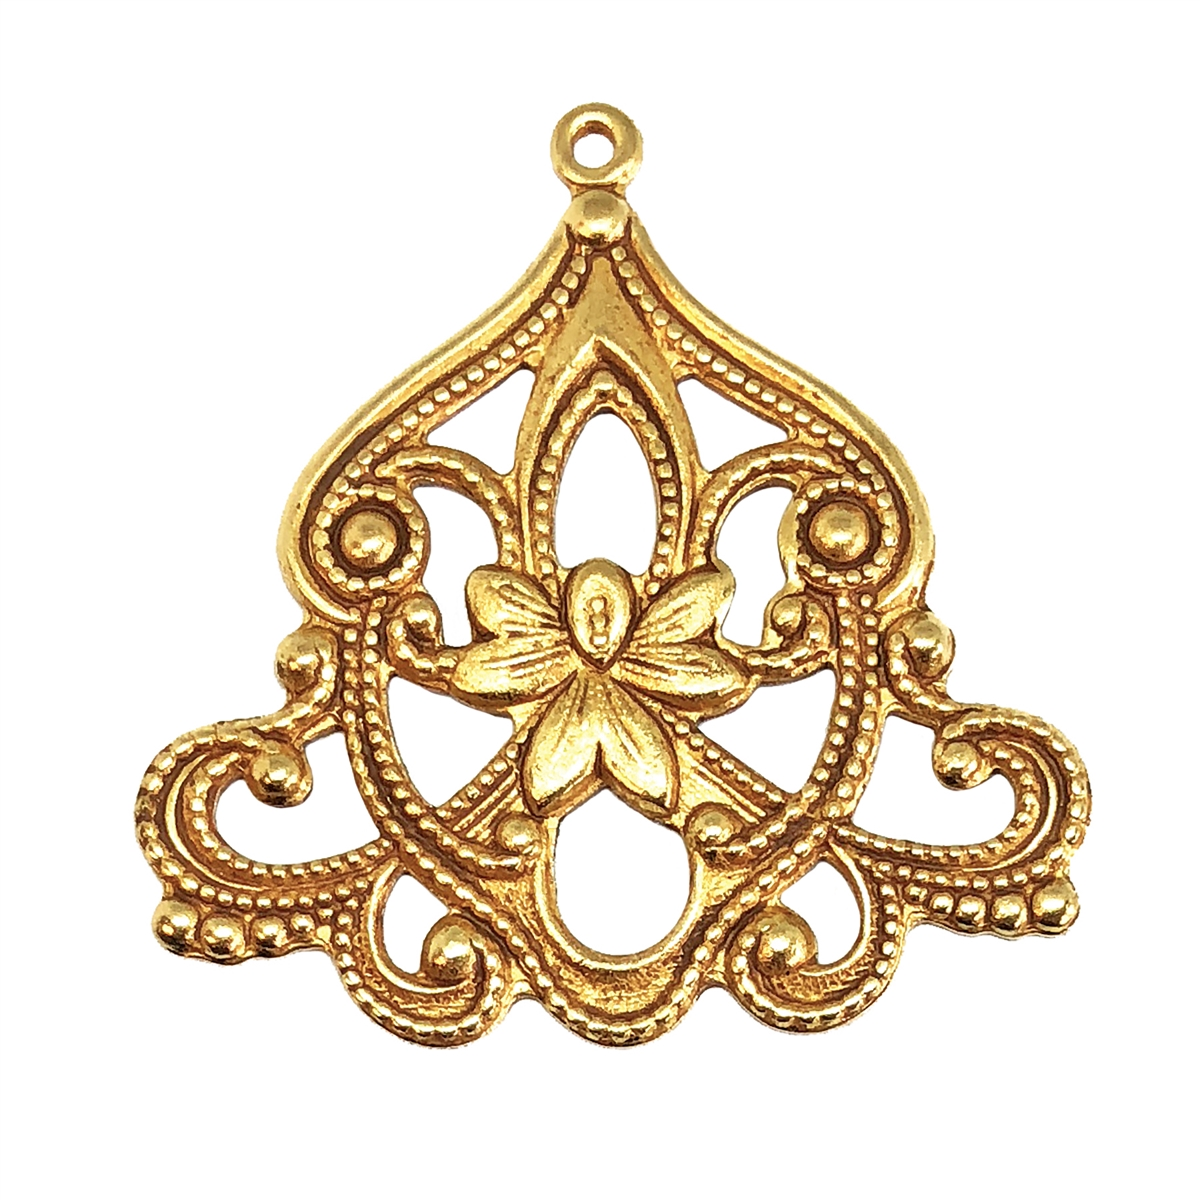 Brass floral pendant classic gold 05774 vintage jewelry supplies brass floral pendant classic gold 05774 vintage jewelry supplies jewelry making supplies nickel free us made aloadofball Choice Image